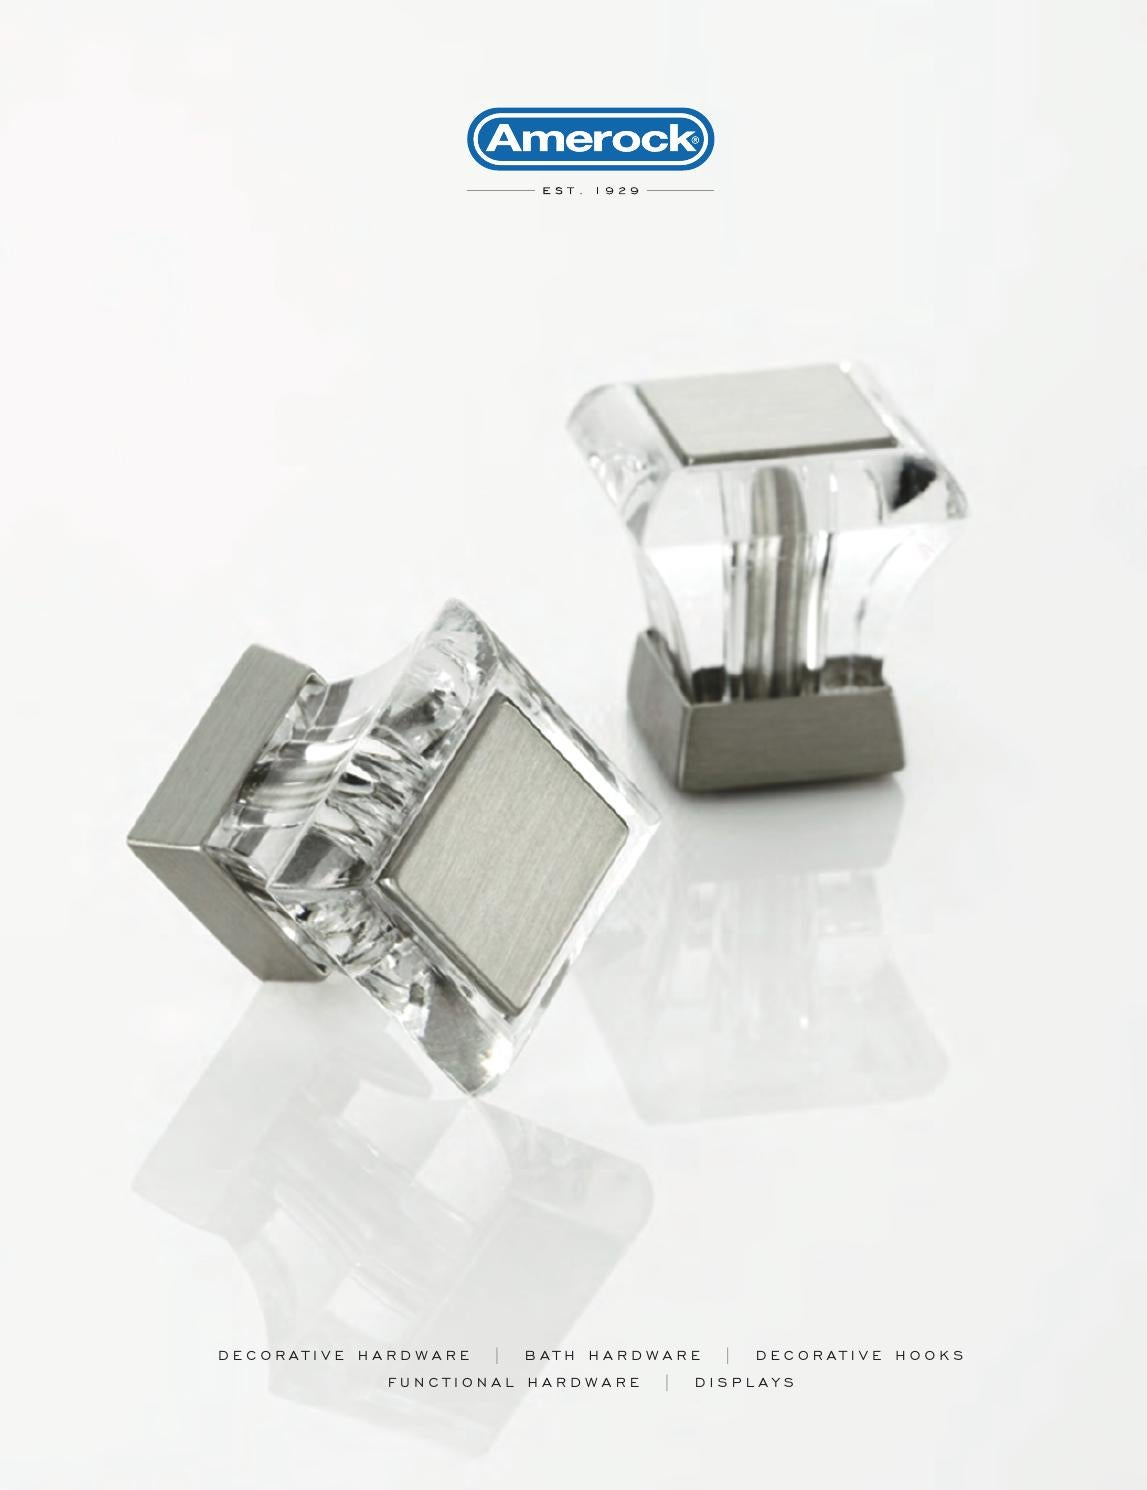 Amerock  Allison  Cabinet Pull  4-5//16 in L 1-1//4 in Brushed Chrome  1 pk